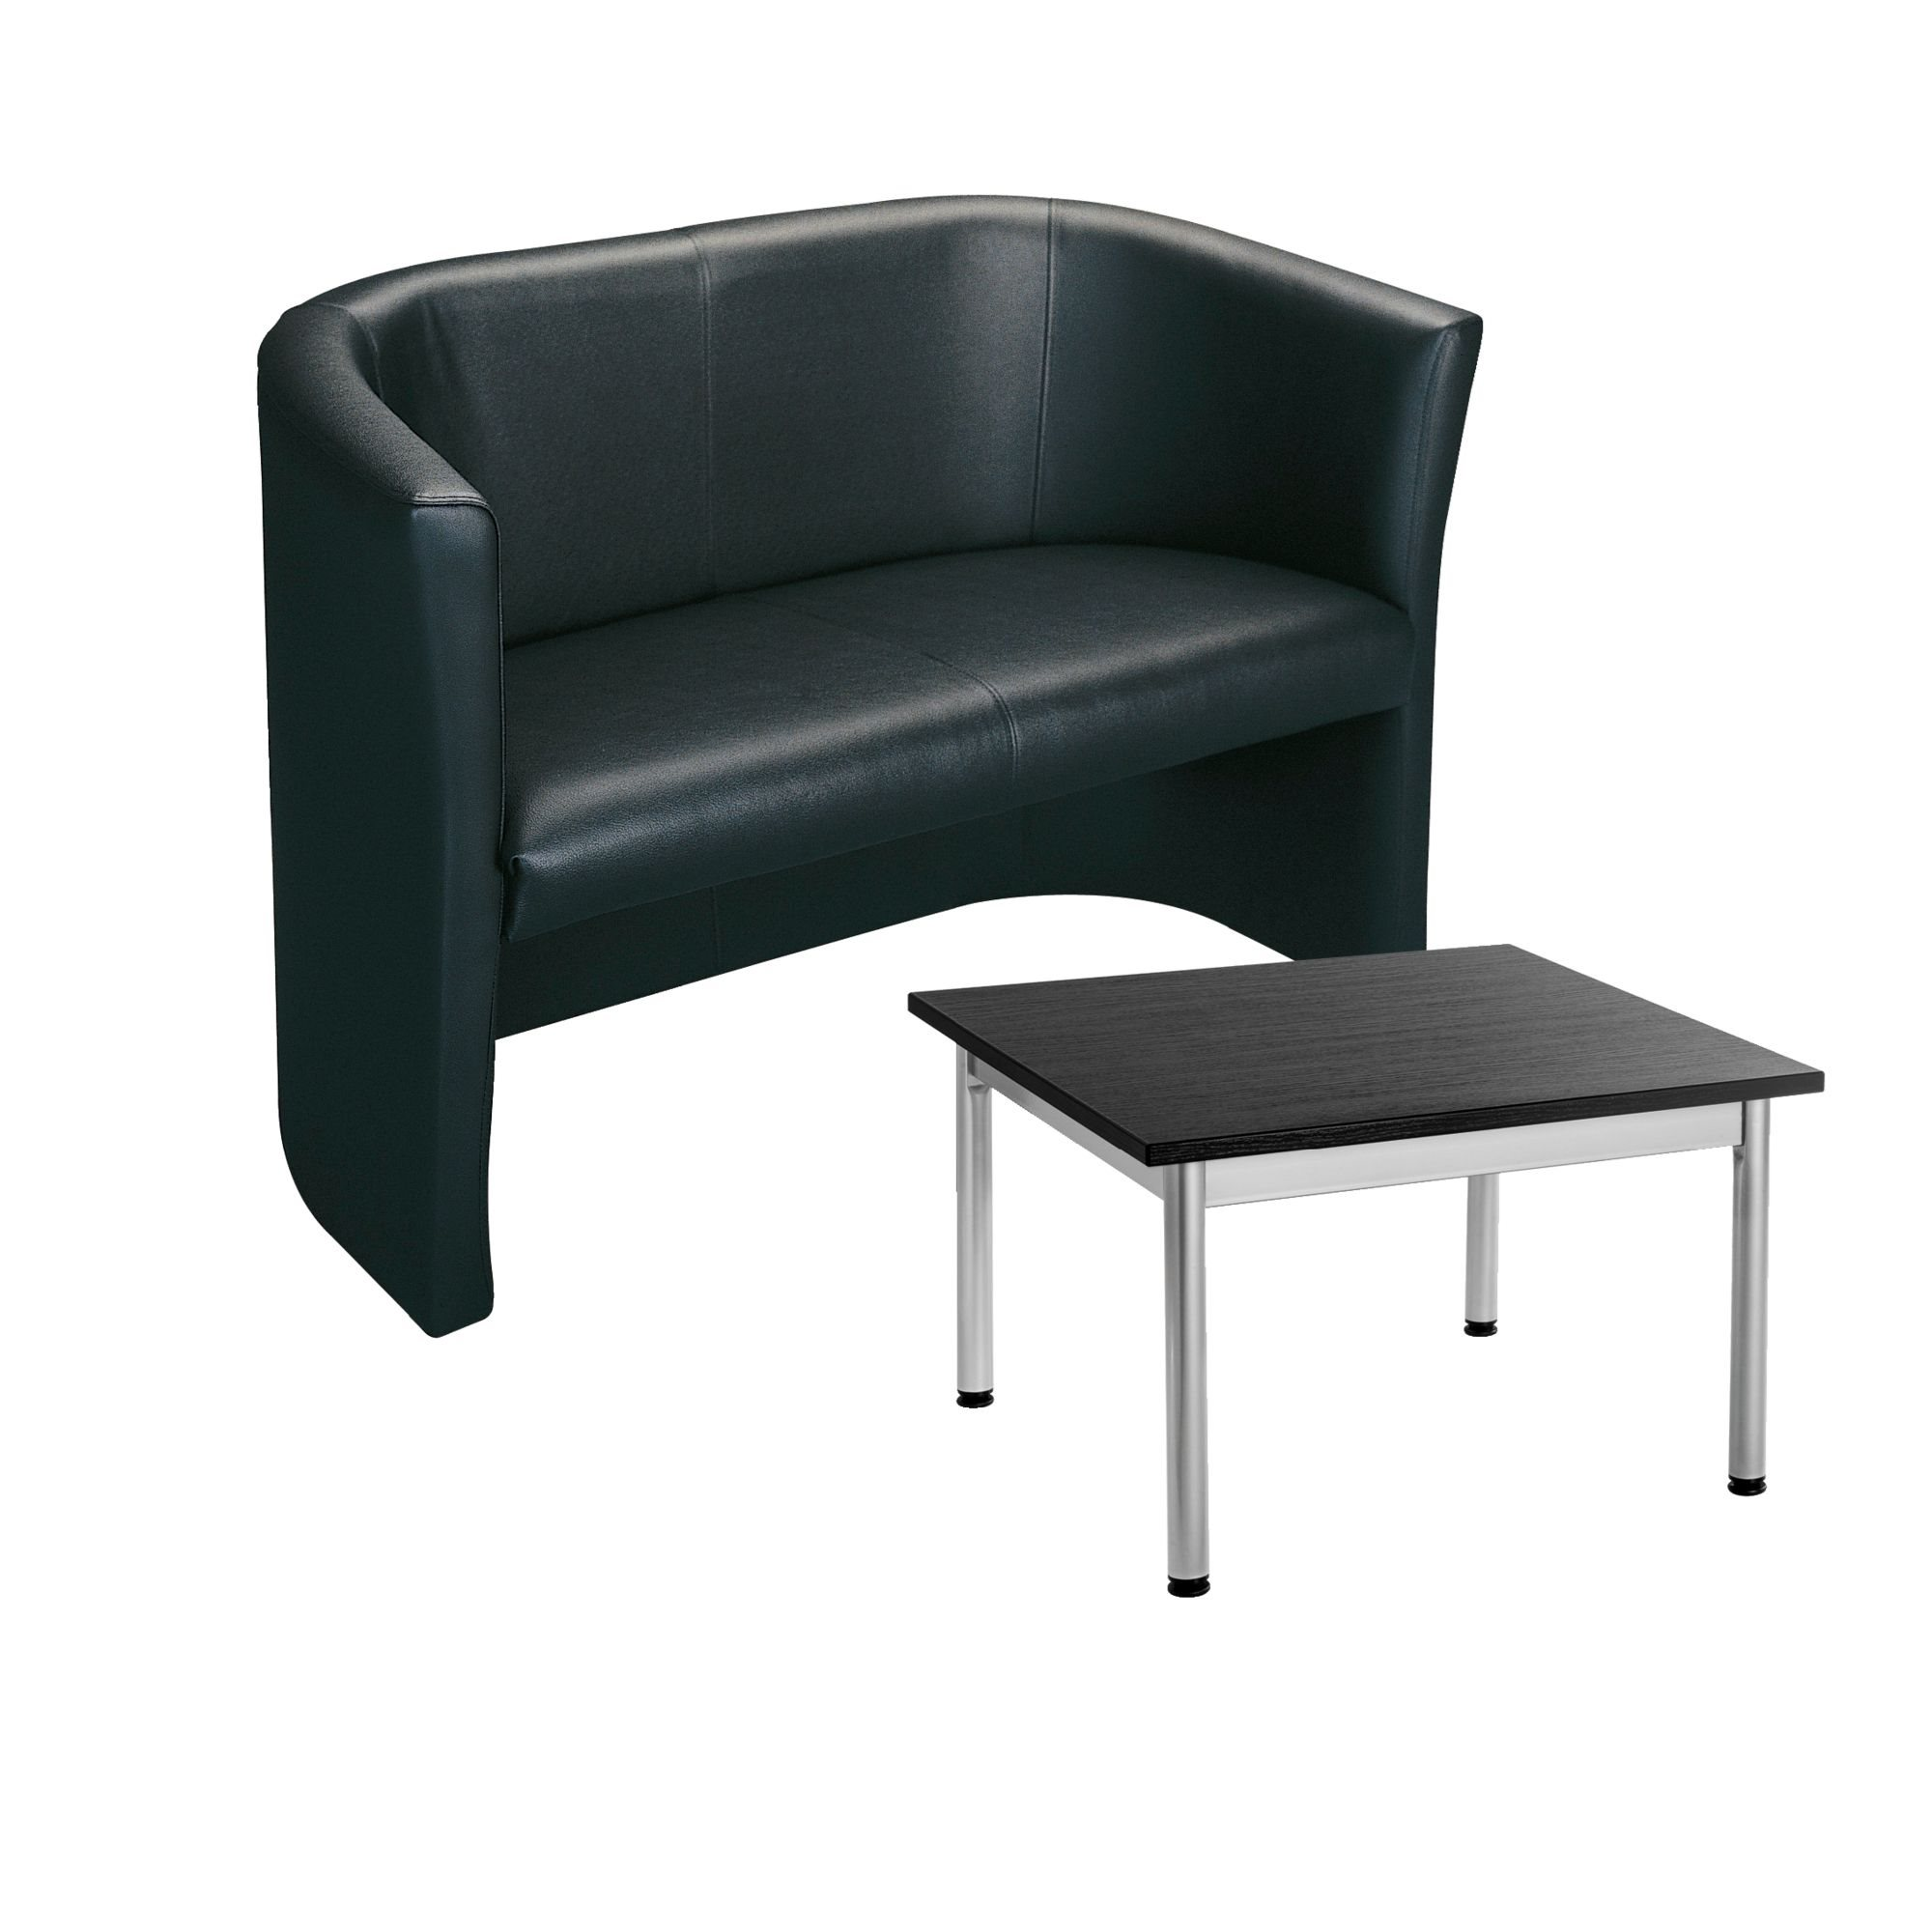 Pack sofa Premium and low squared table classic